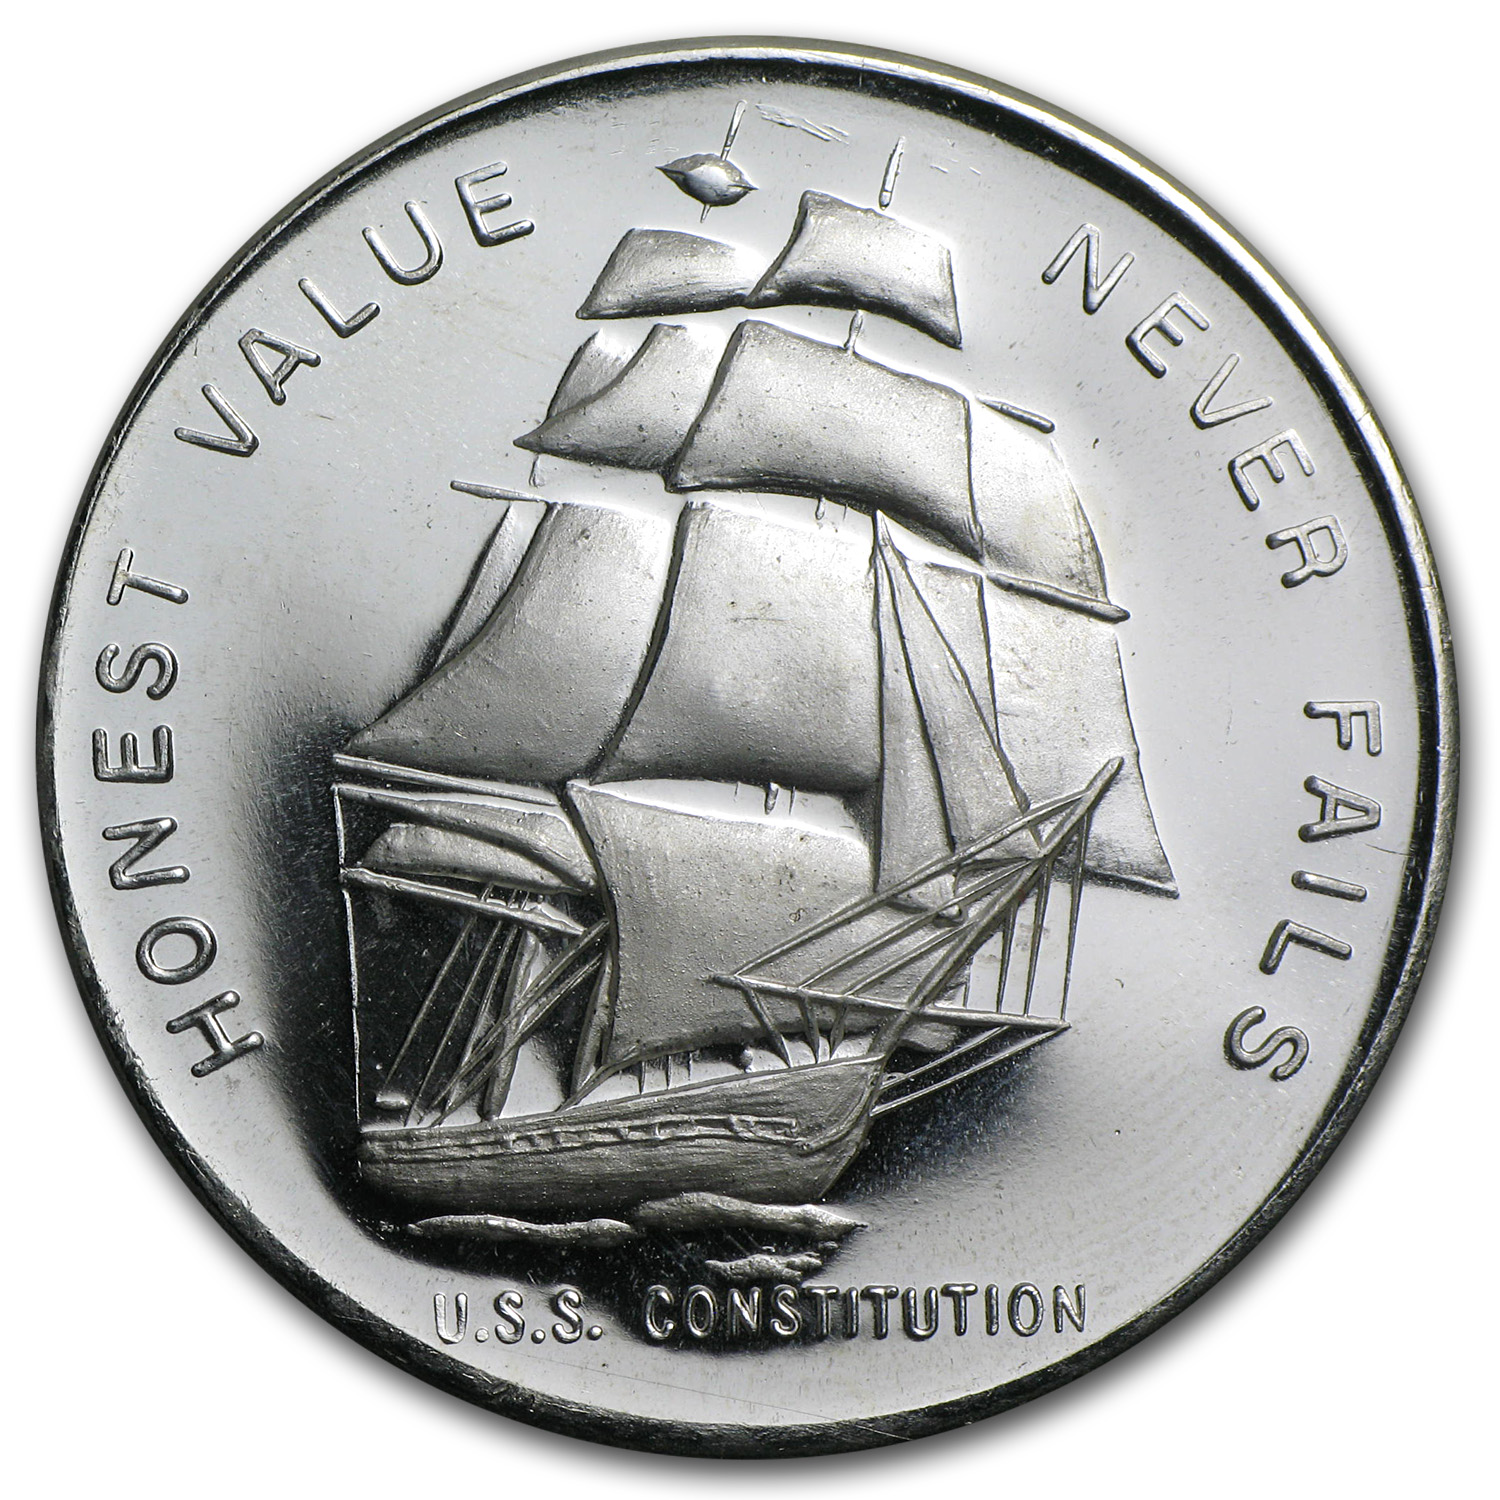 1 oz Silver Round - U.S.S. Constitution Ship